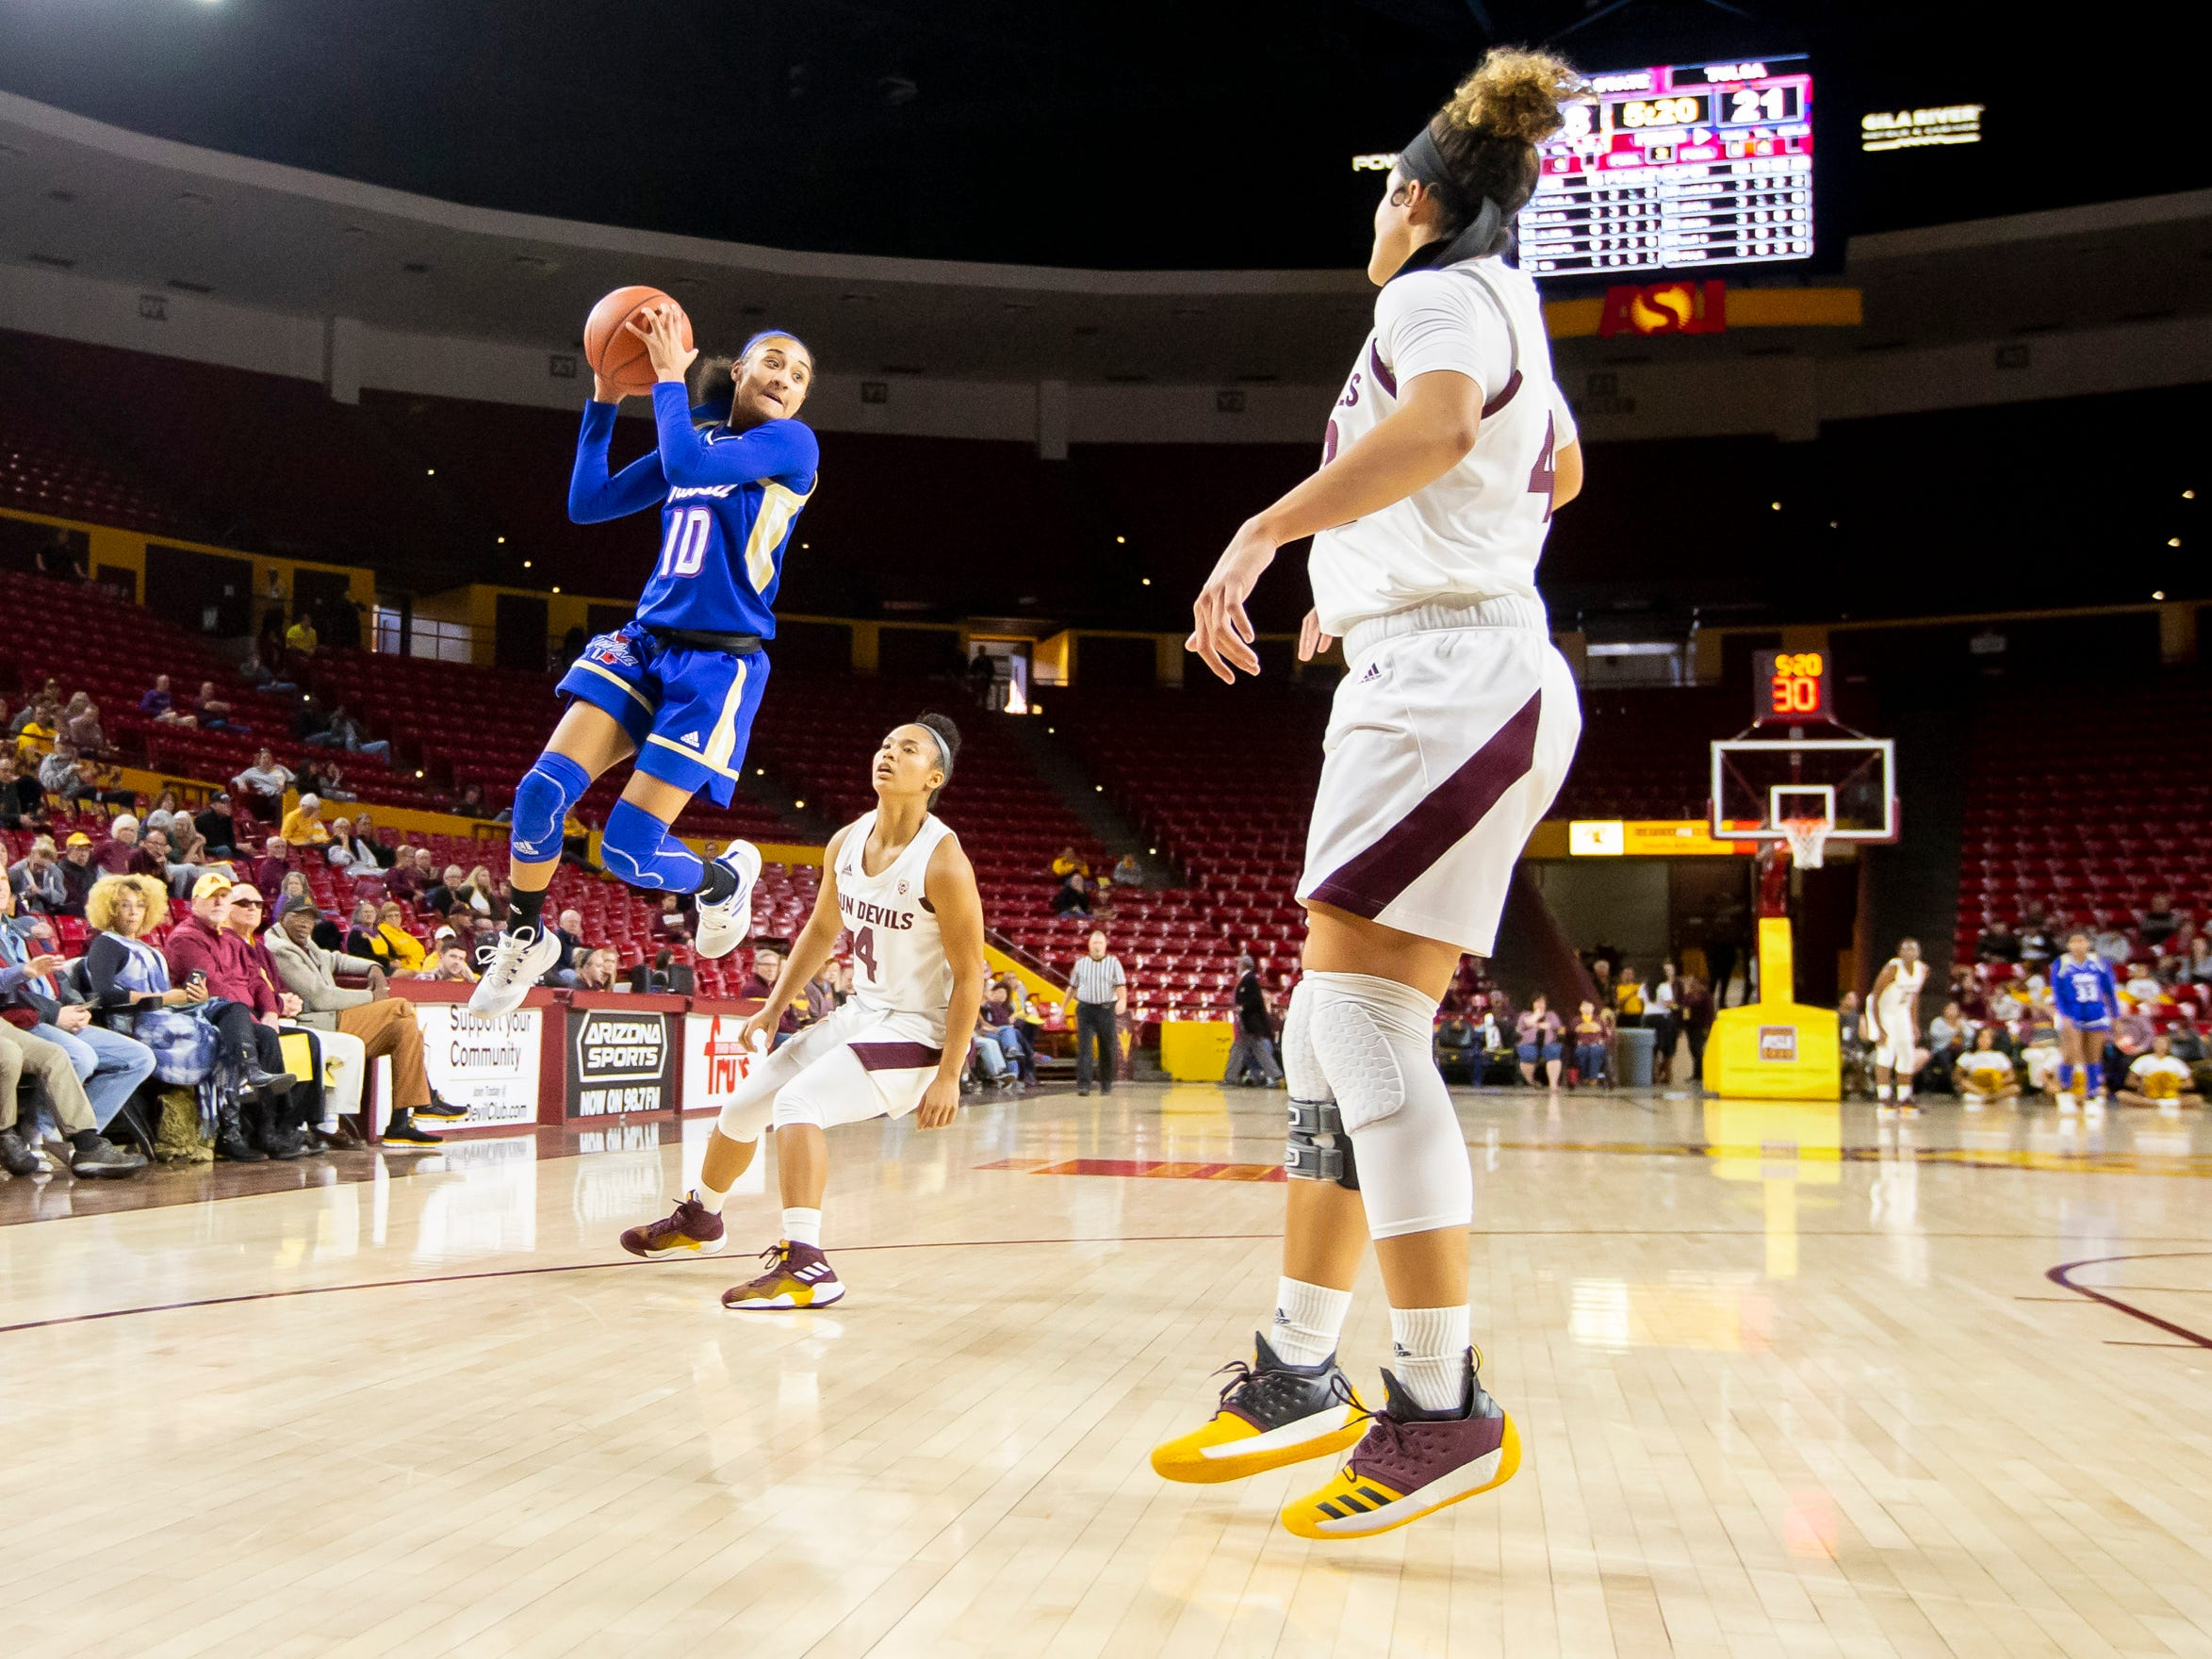 Guard Alexis Gaulden (10) of Tulsa Golden Hurricane catches a pass against the Arizona State Sun Devils at Wells Fargo Arena on Sunday, December 2, 2018 in Tempe, Arizona.